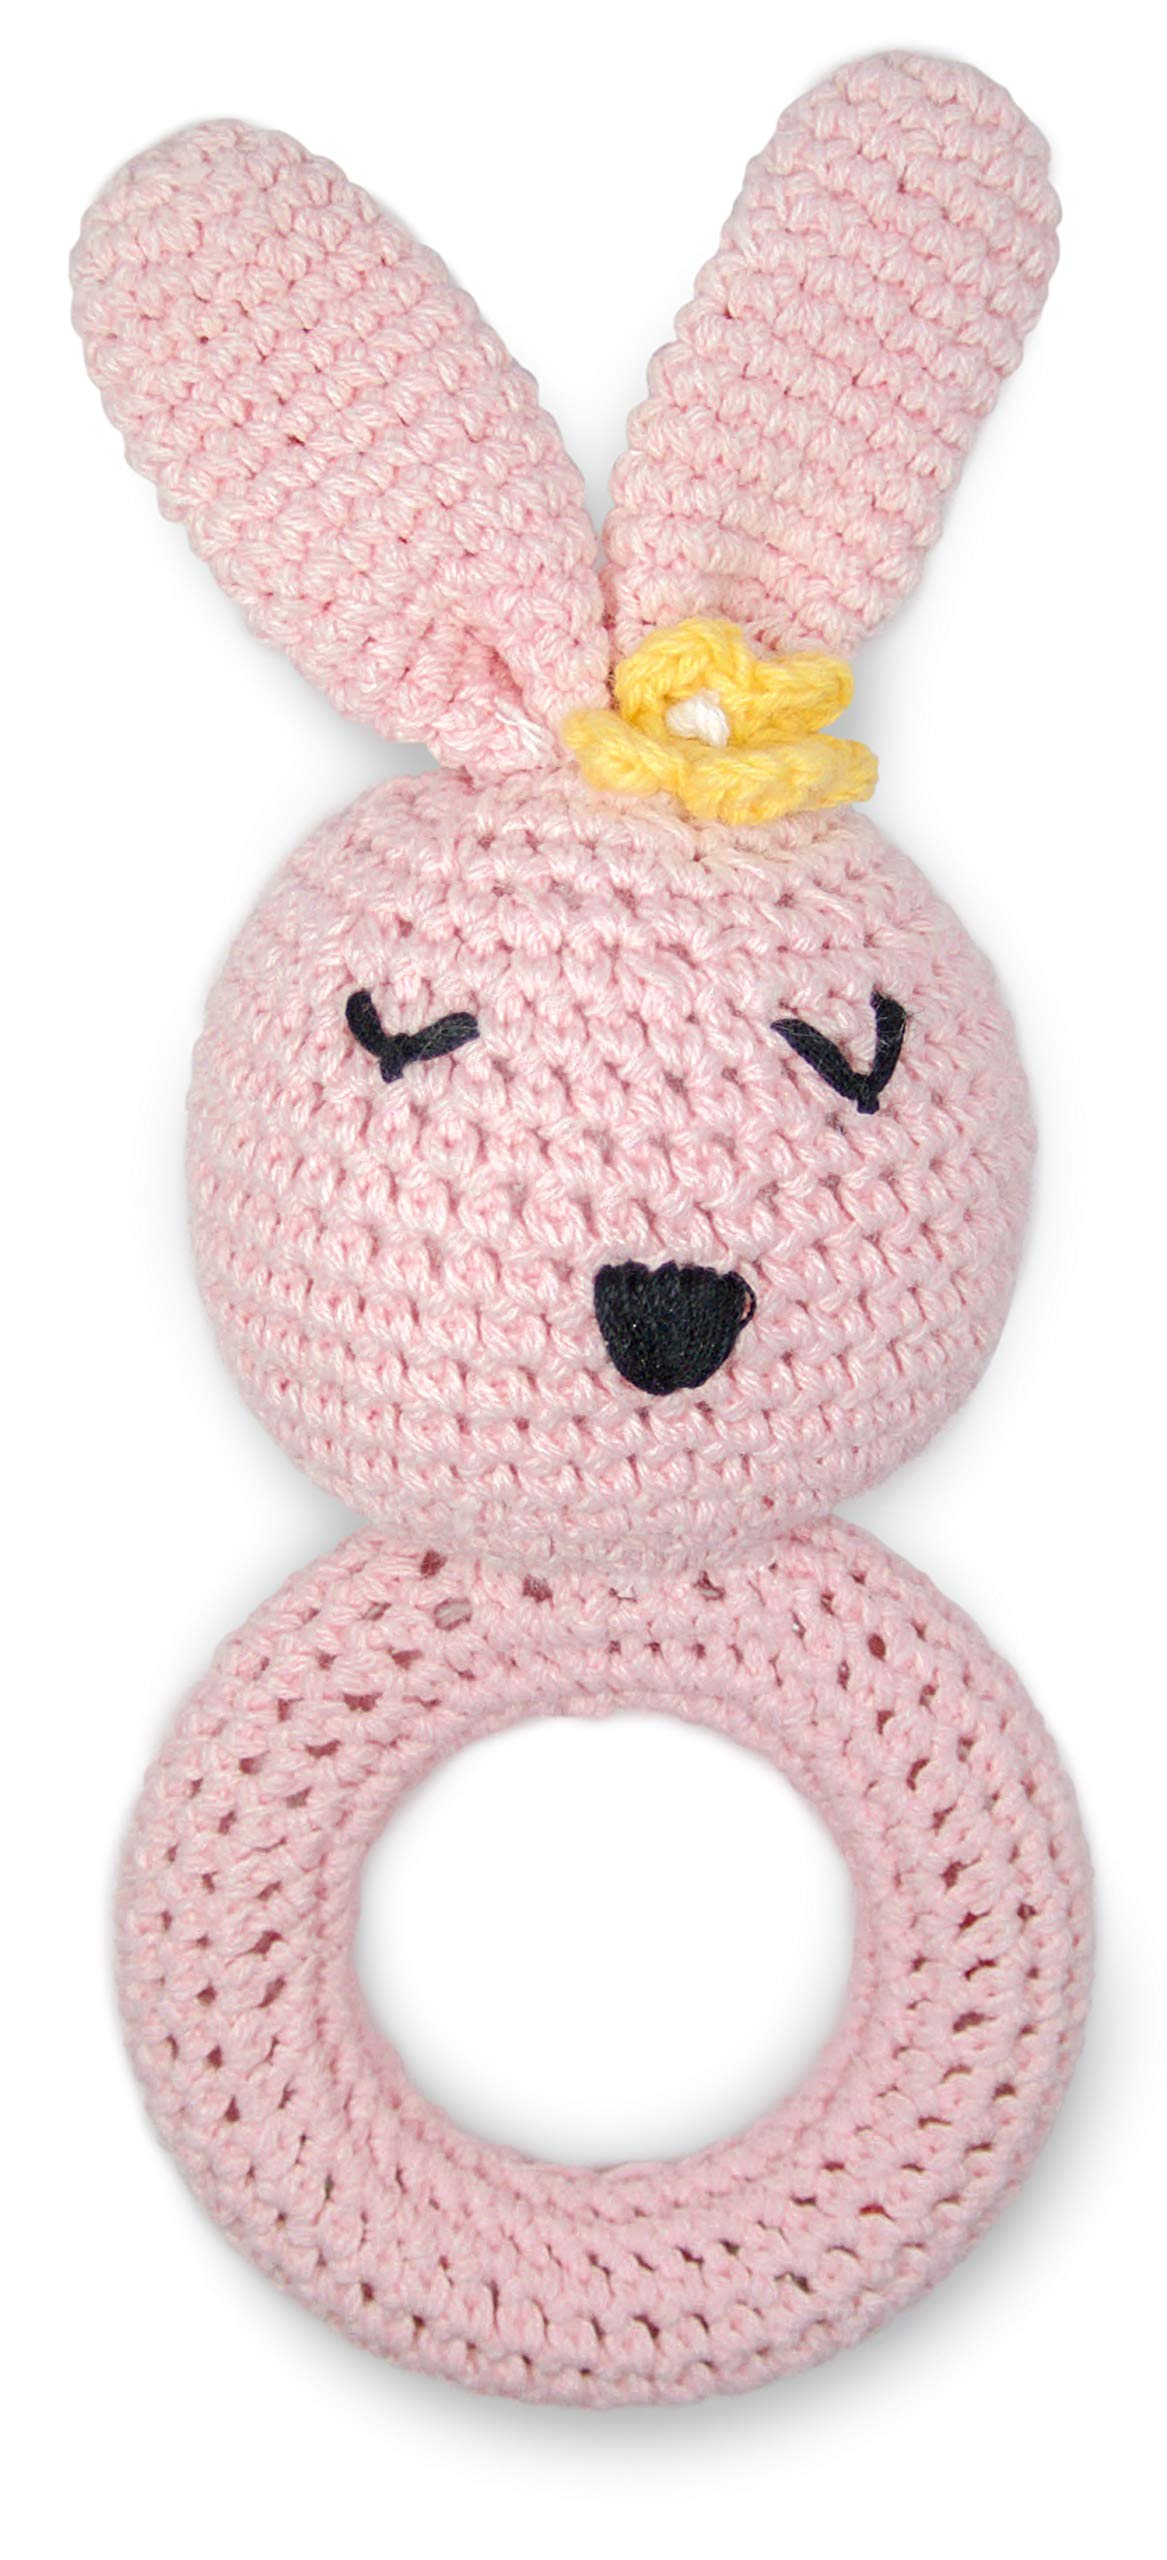 Cute New York Pure Cotton Knit Animal Rattle for Baby Boy or Girl/(Pink Rabbit)